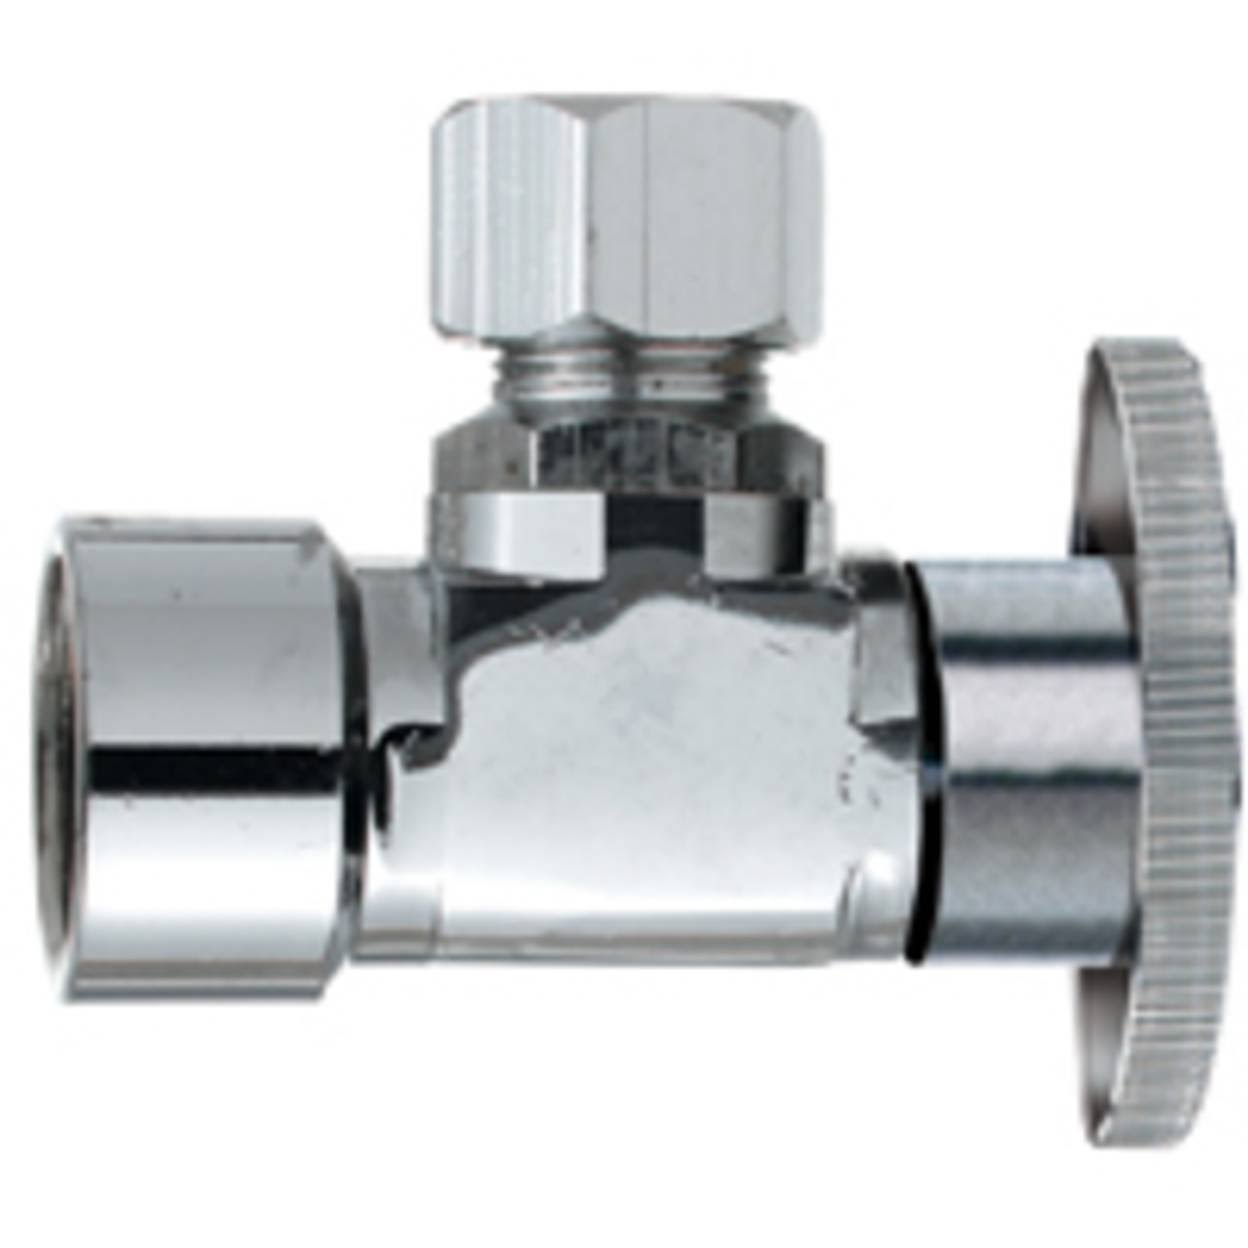 Plumb Pak Valve Water Supply Line Valves - 1/2 Fipx